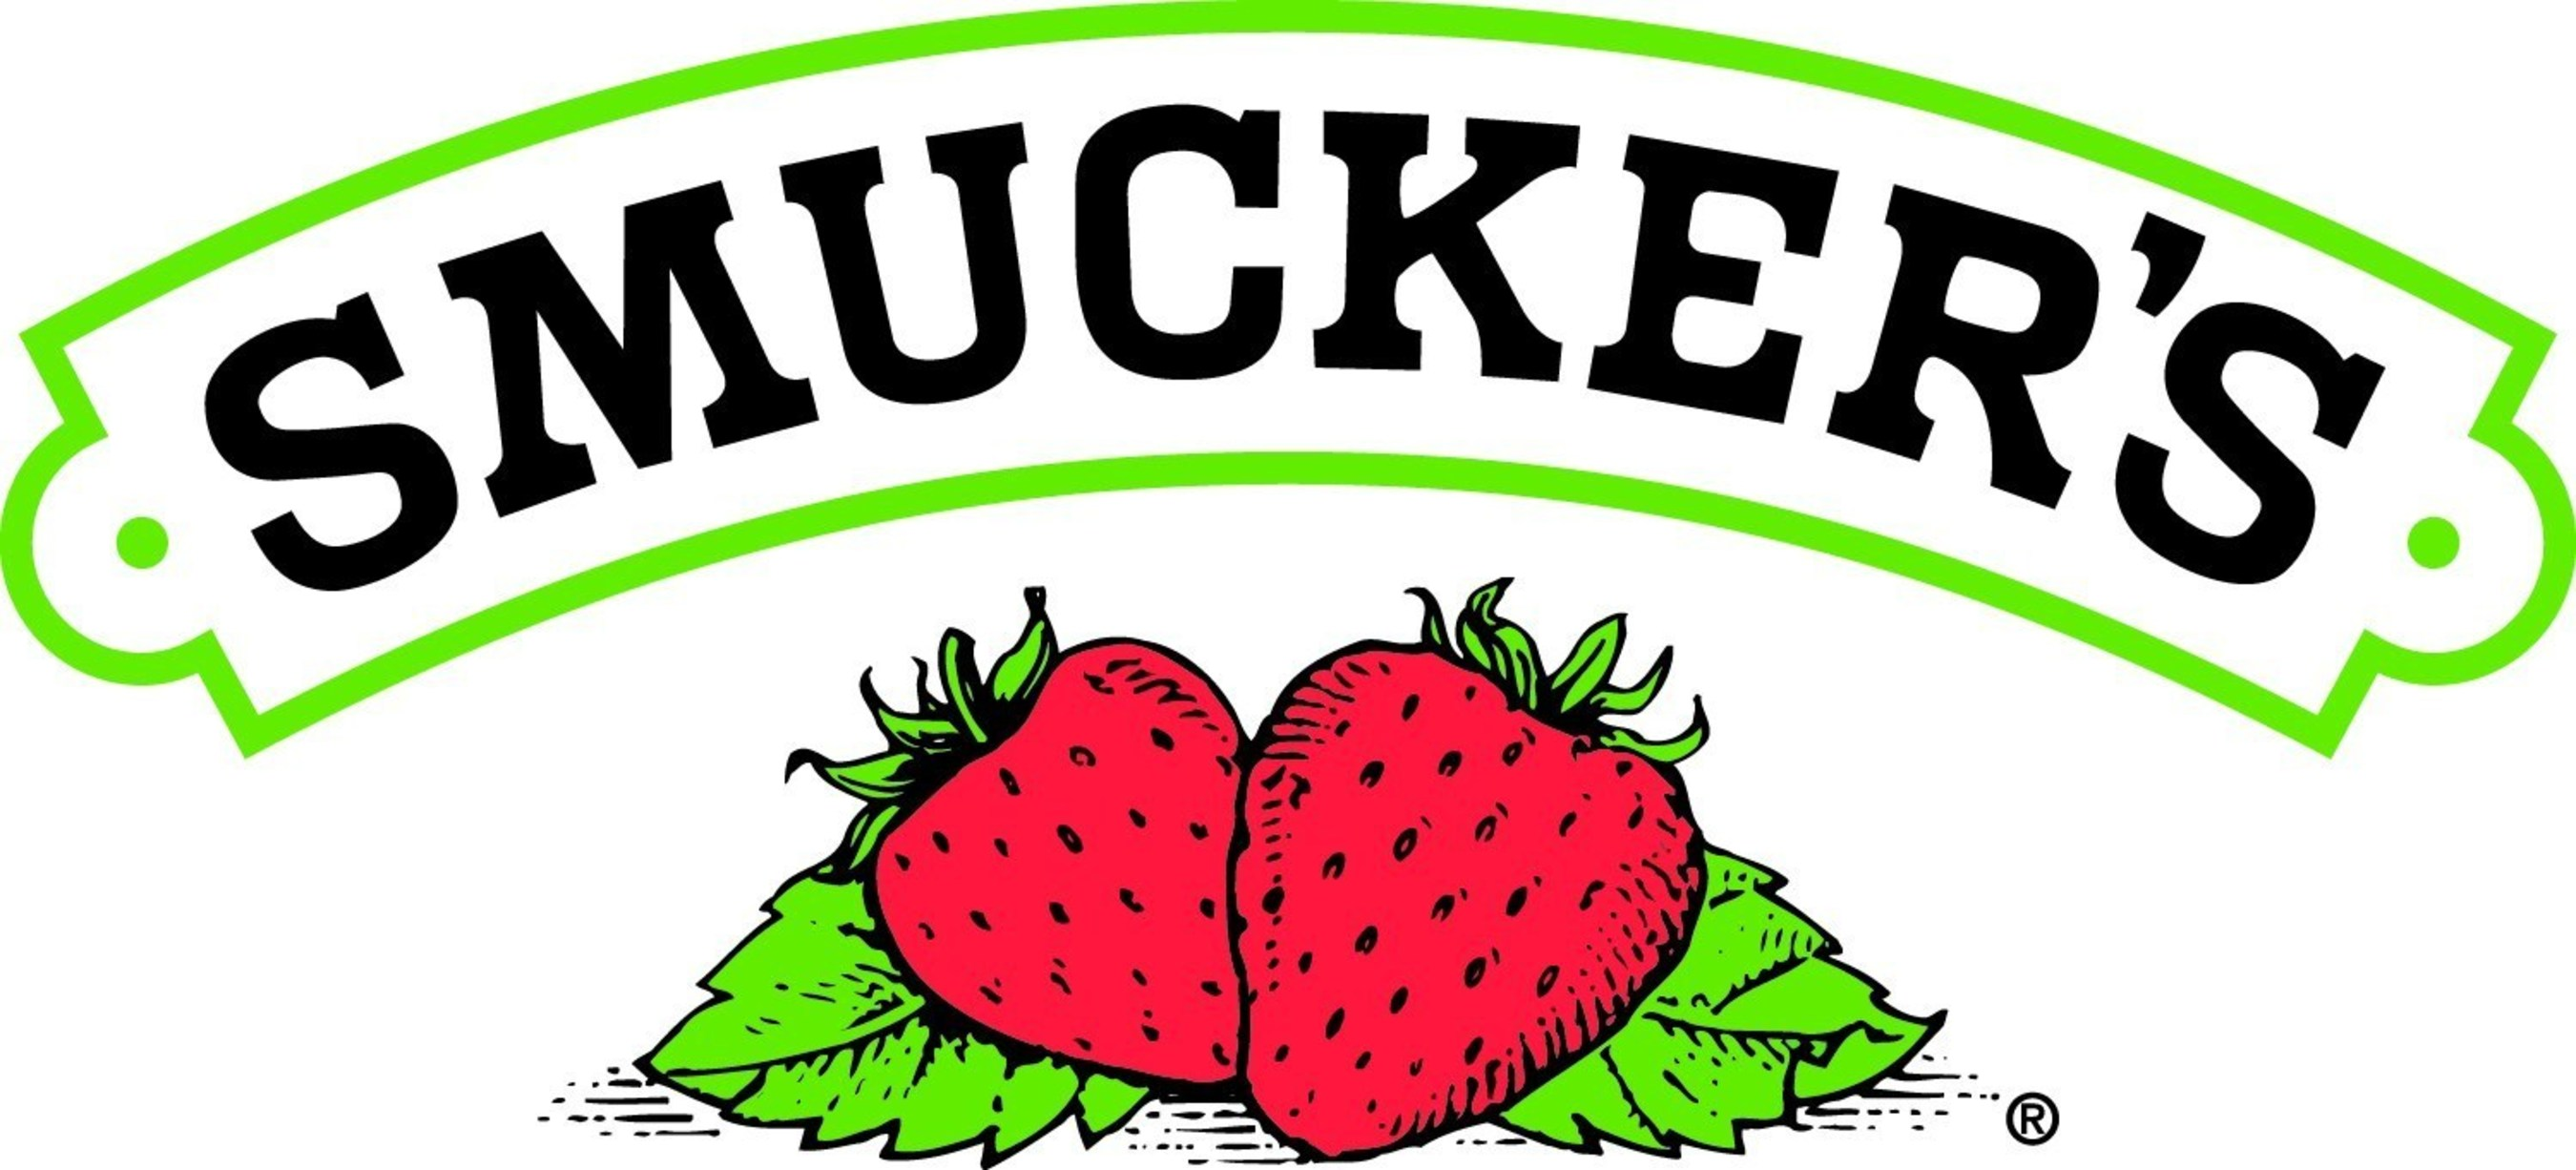 Smuckers logo clipart svg freeuse Dunkin\' Brands, The J.M. Smucker Company And Keurig Expand ... svg freeuse